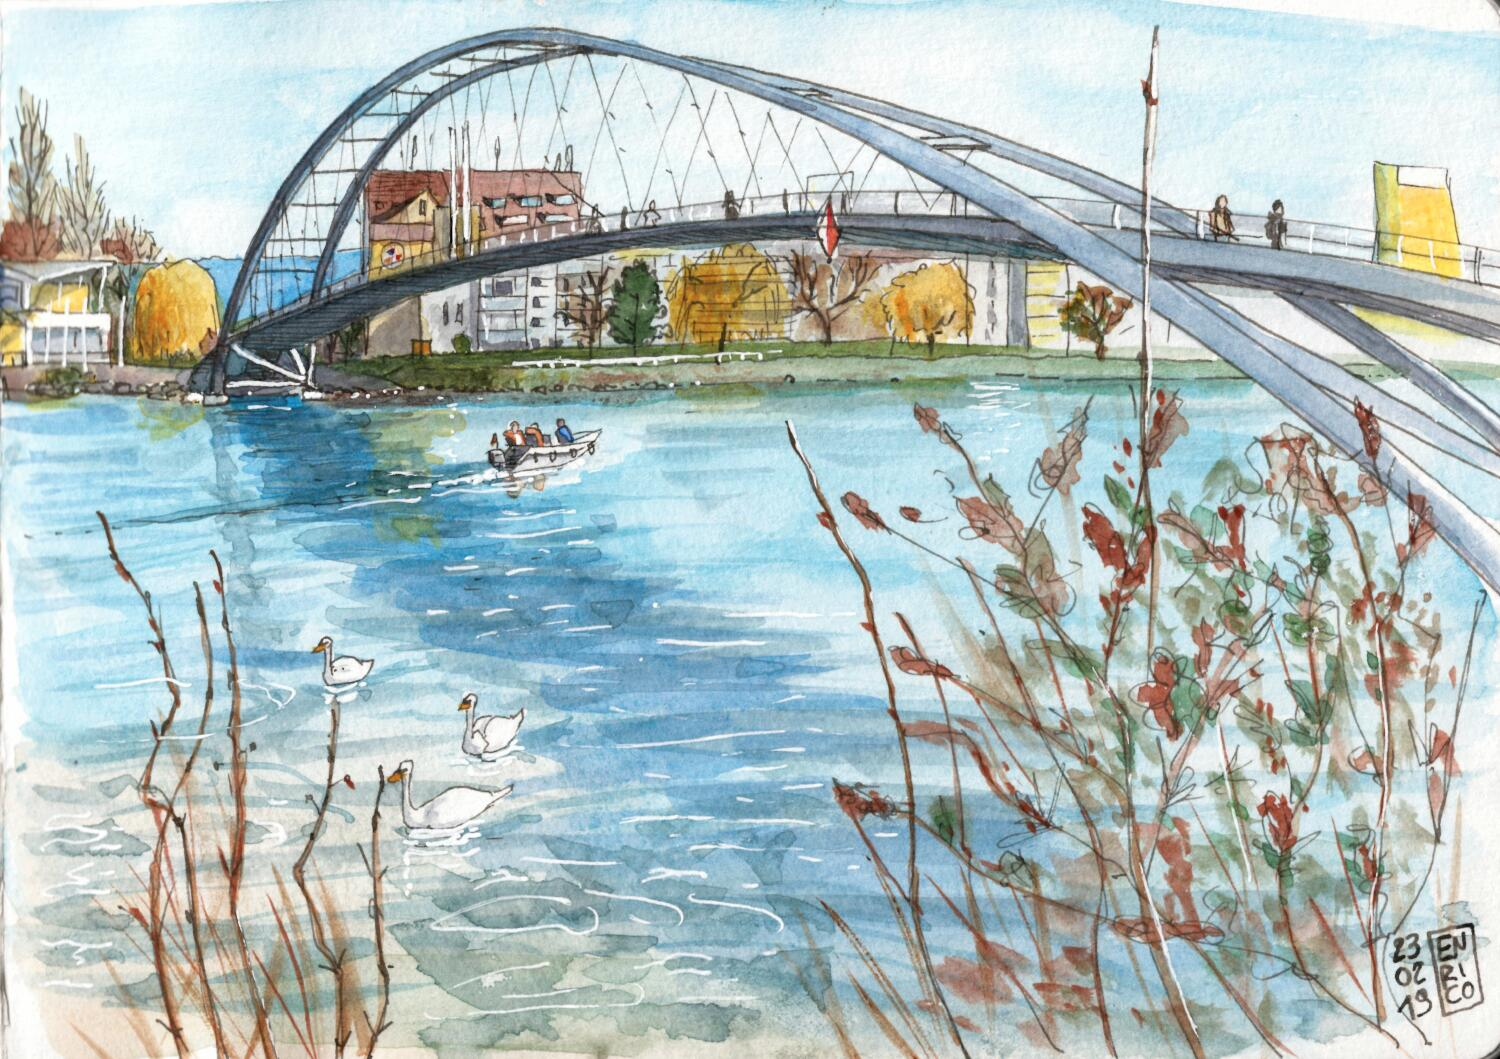 I drew this sitting in France; the other side of the pedestrian bridge is in Germany; Switzerland is few hundred meters upstream. Cool.